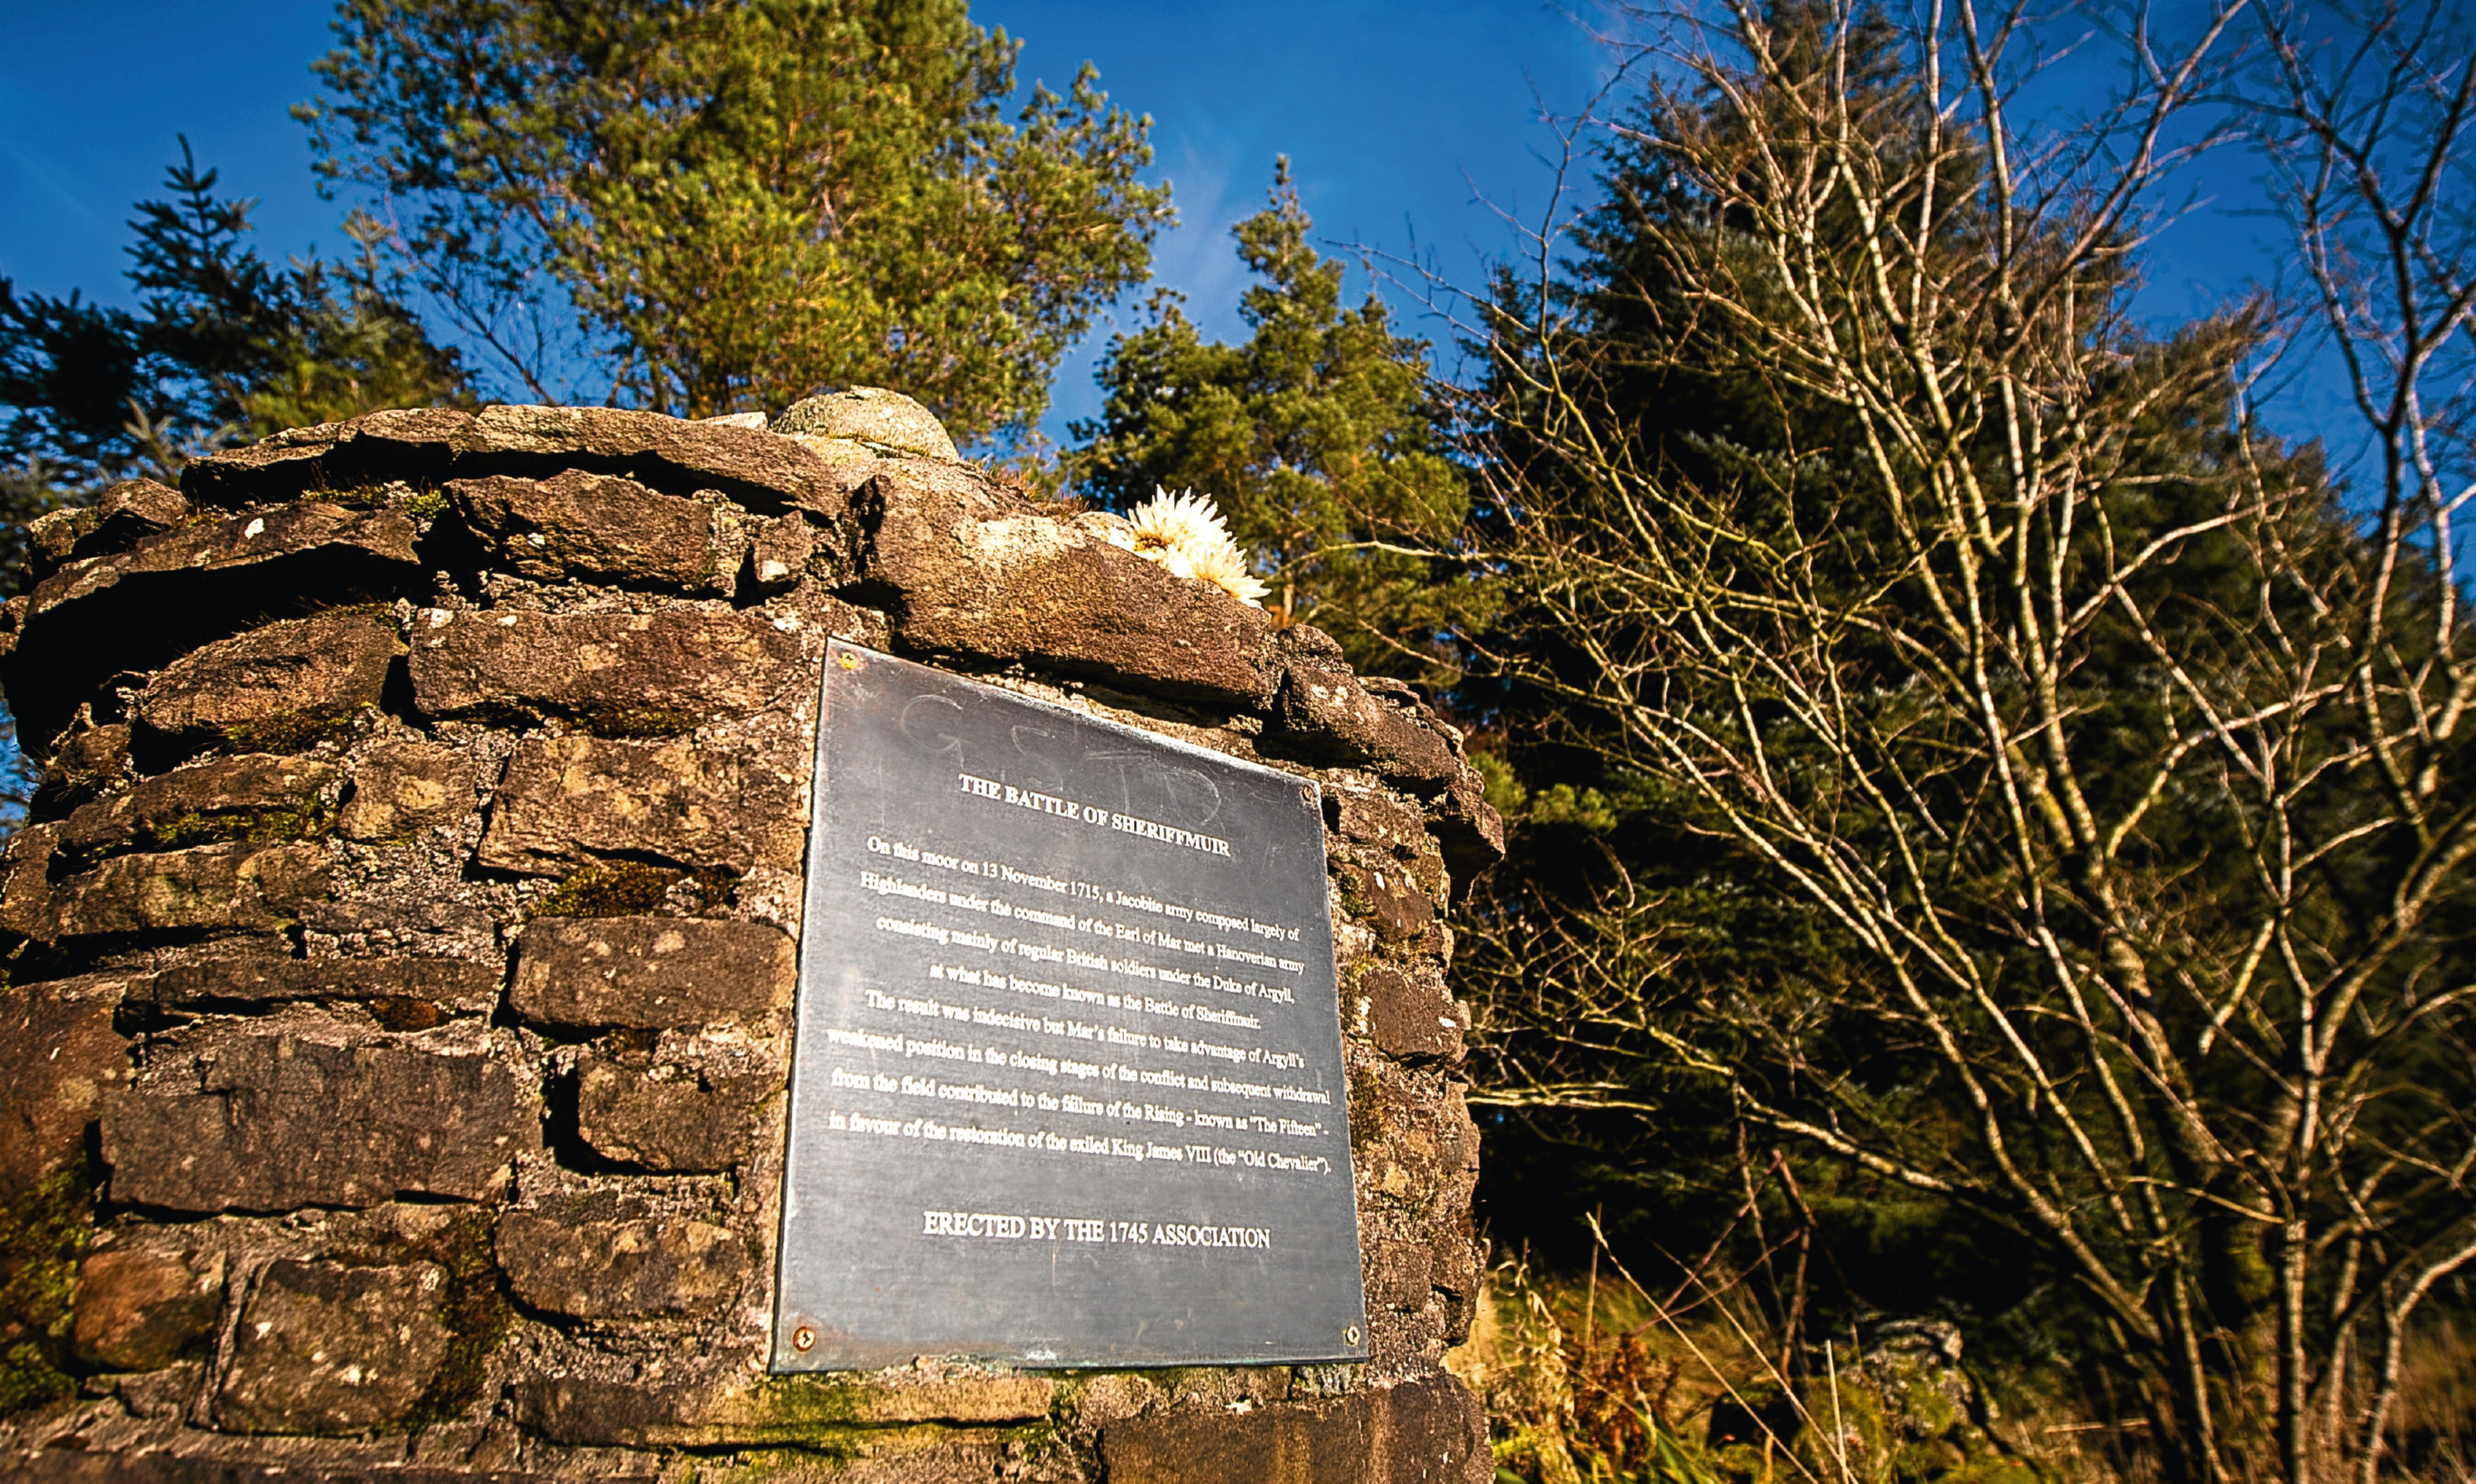 The memorial cairn at the site of the Battle of Sheriffmuir.